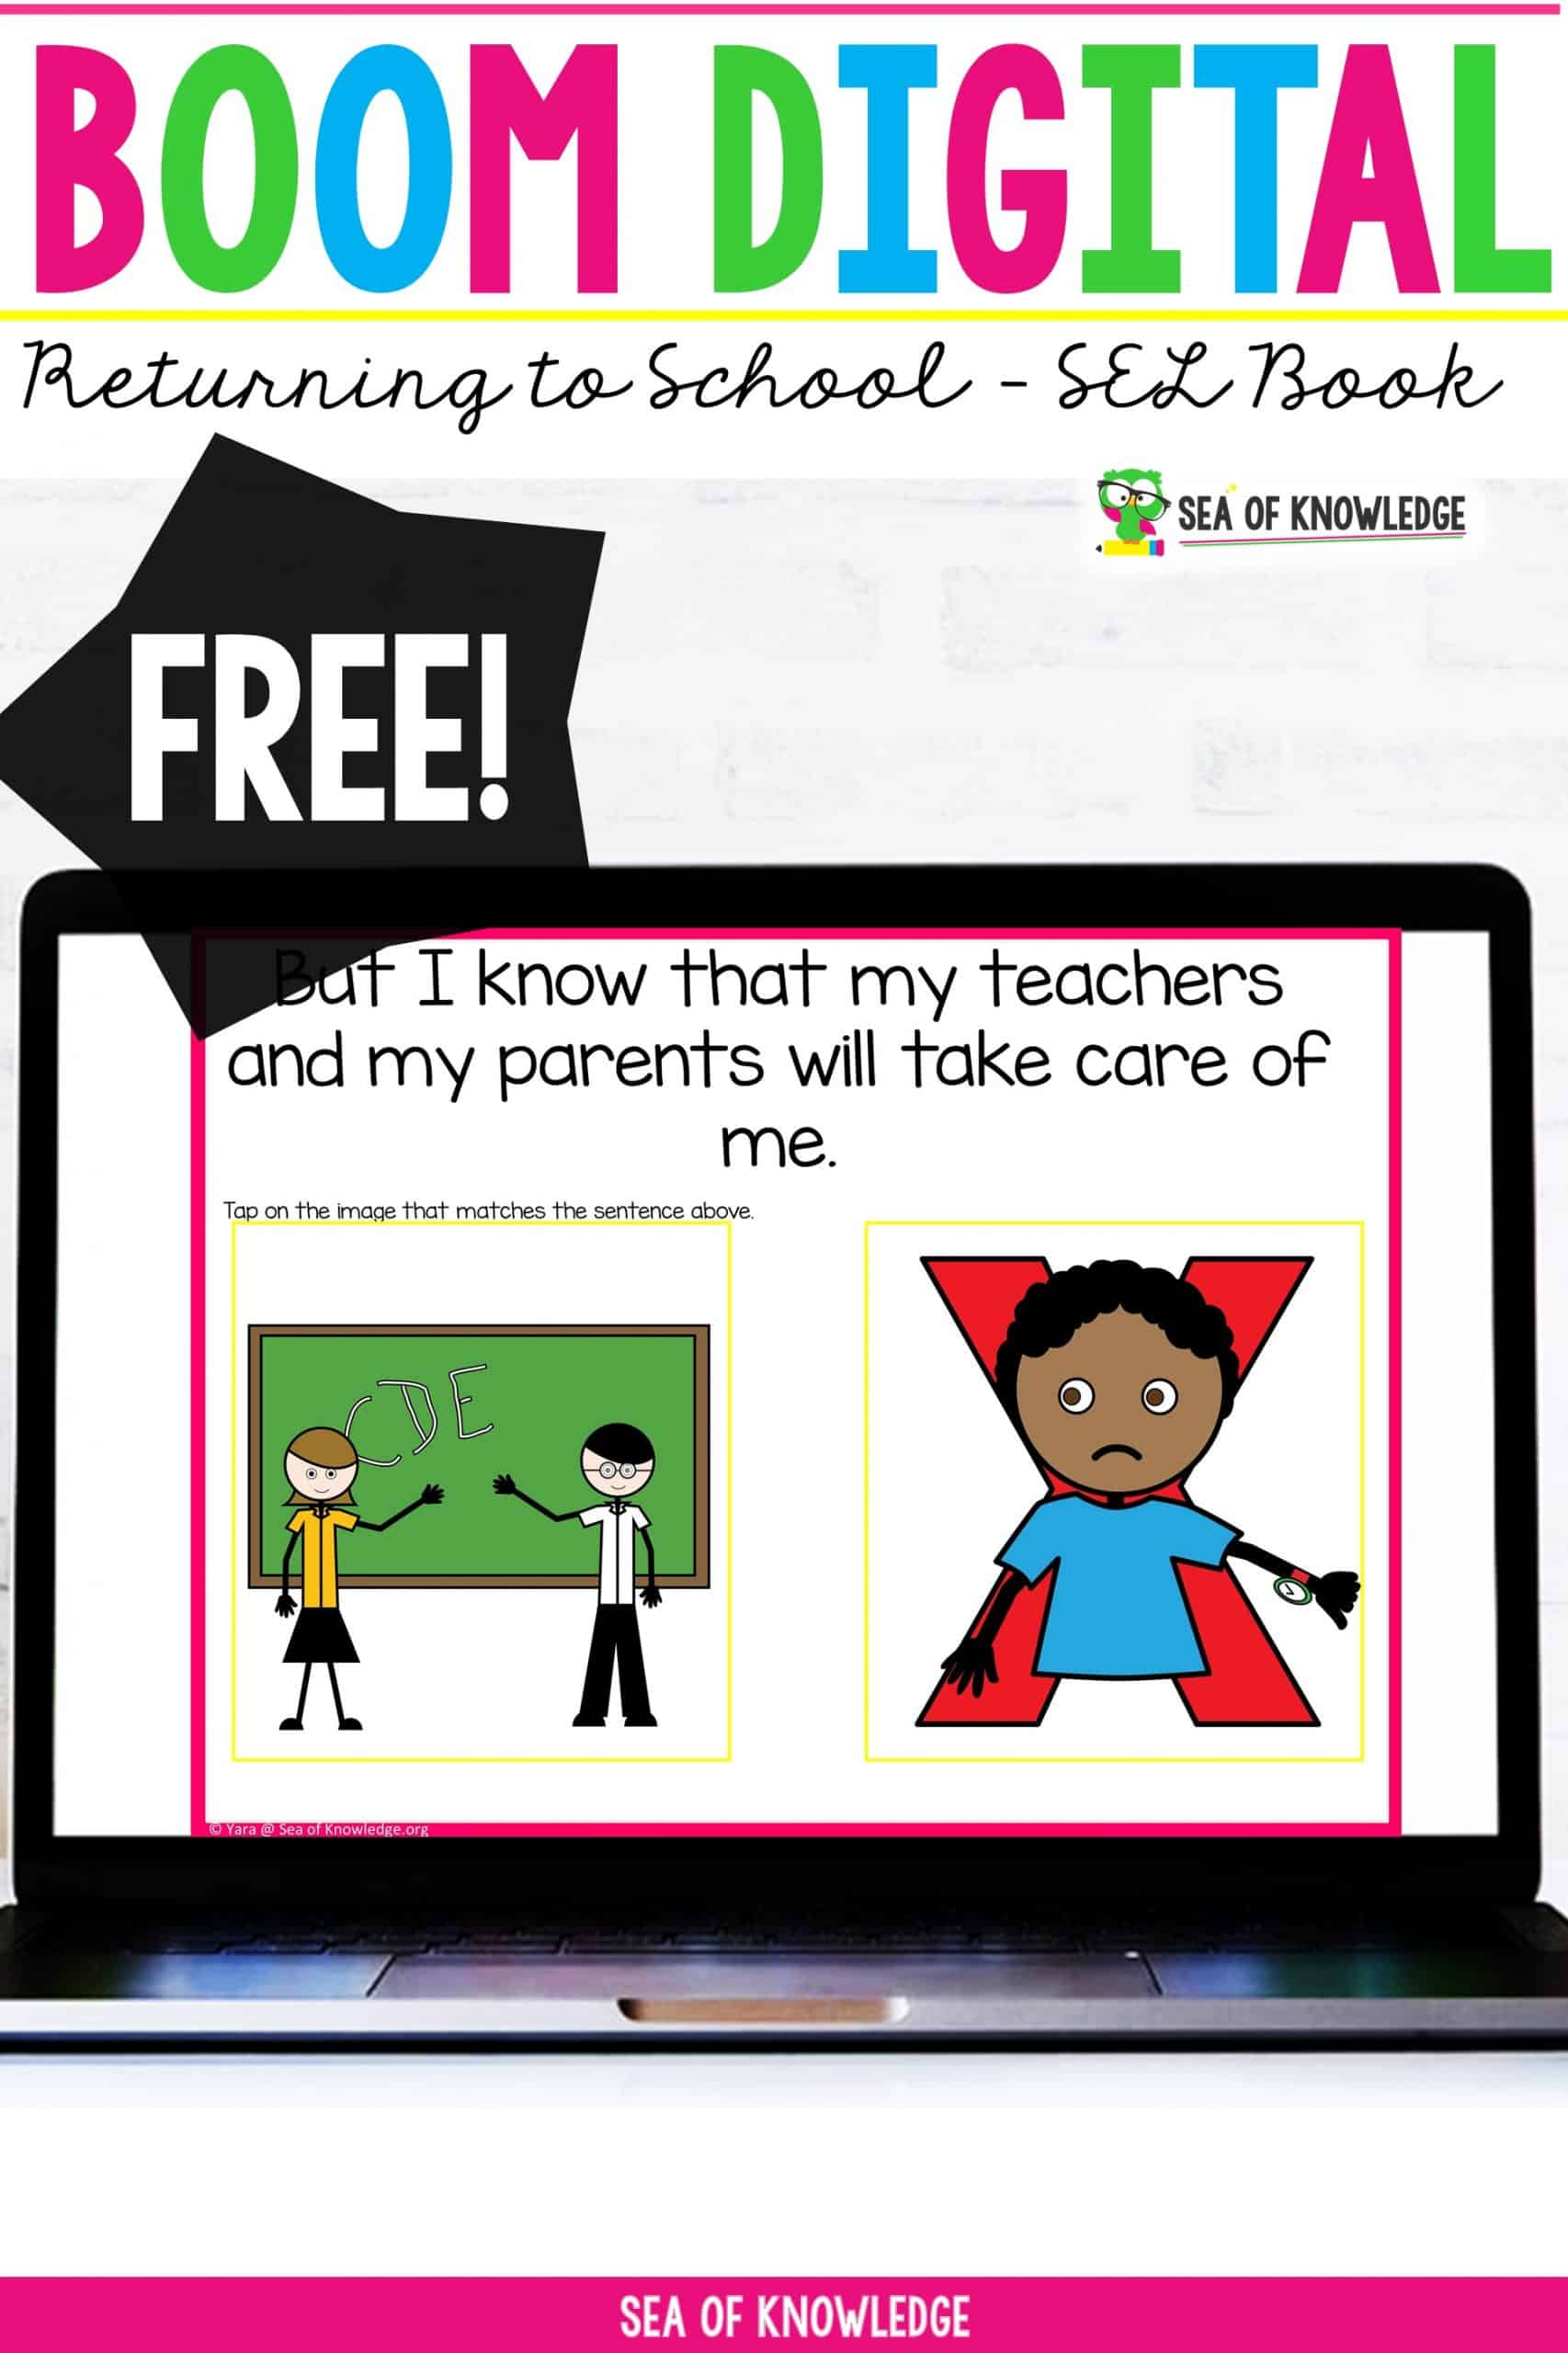 Preschoolers and toddlers will learn how to cope with their emotions with this interactive activity book. This book Social Story About Returning to School after Covid19 is a great way to ease kids back into the classroom.  These digital SEL books were created specifically to target specific emotions that kids feel and how they can cope when they feel these emotions. There are 16 slides with picture prompts. Preschoolers will need guidance as it needs to be read to them, but they can choose the correct picture response after each slide is read. Best of all, this book is completely FREE!